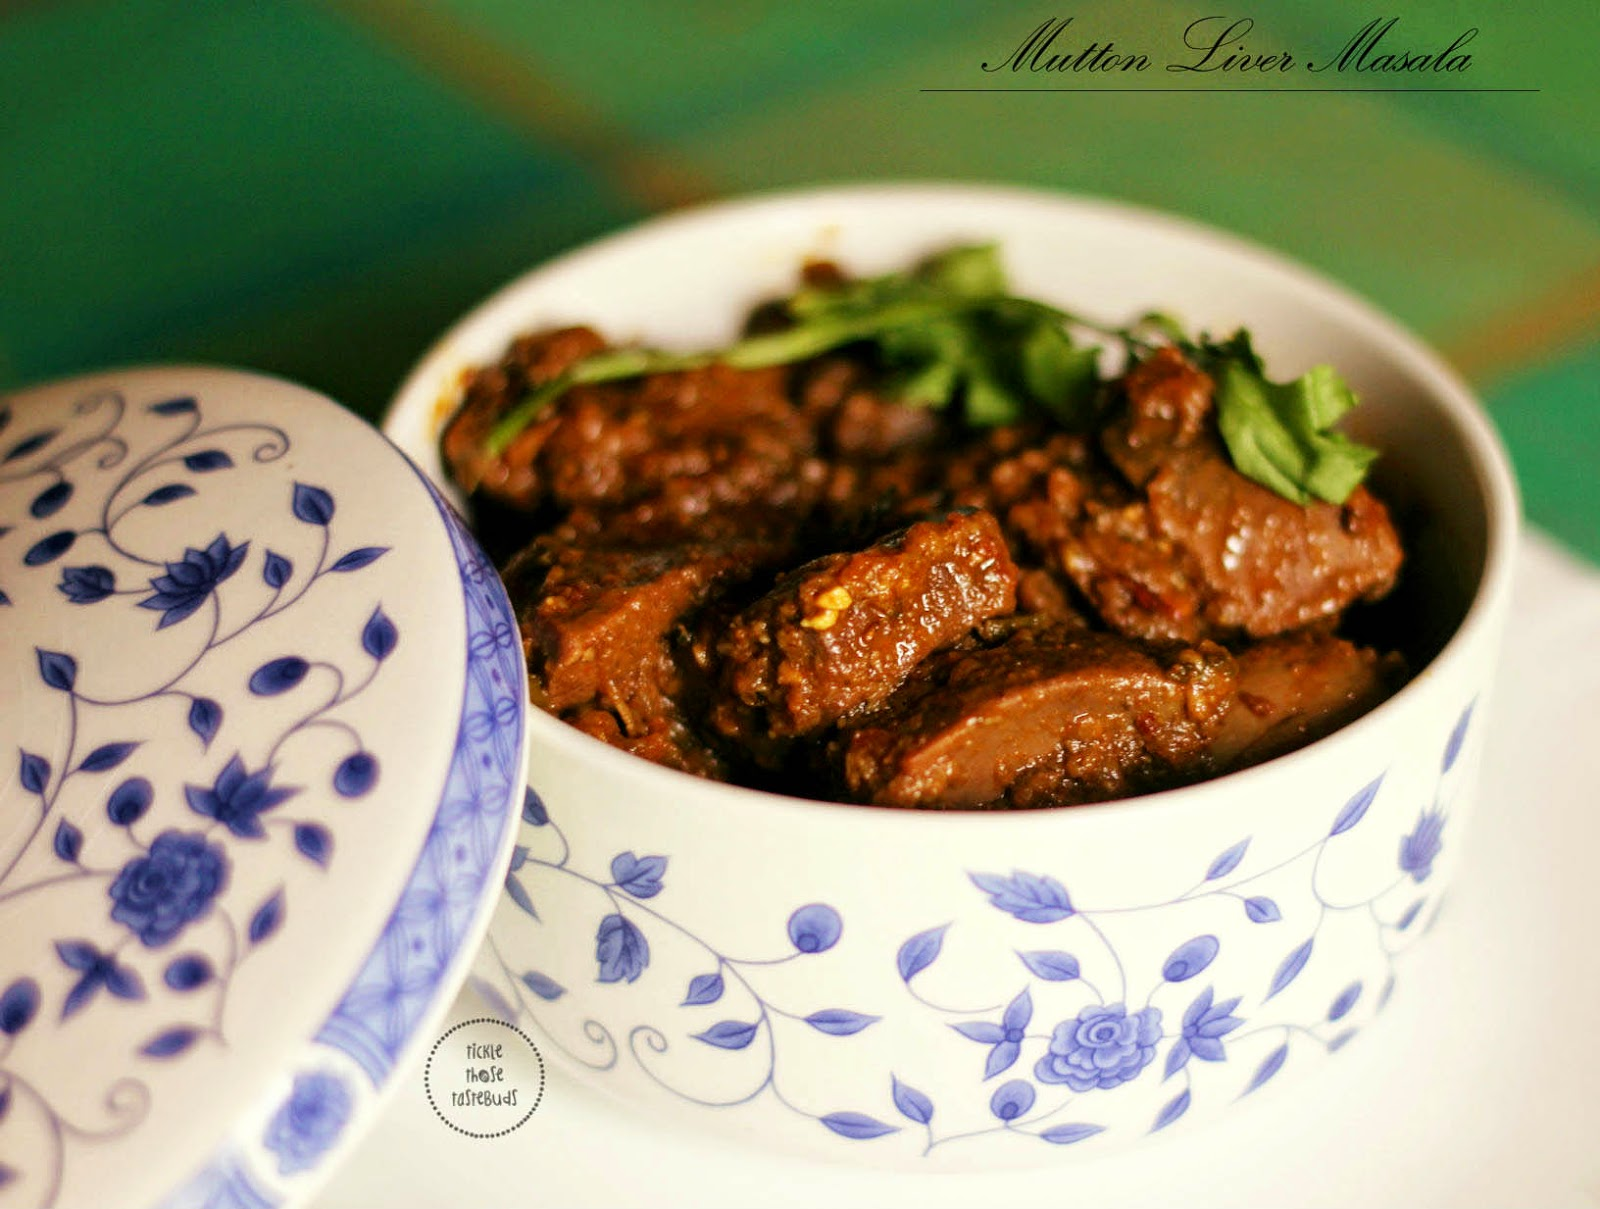 Mutton-Liver-Masala-Ticklethosetastebuds